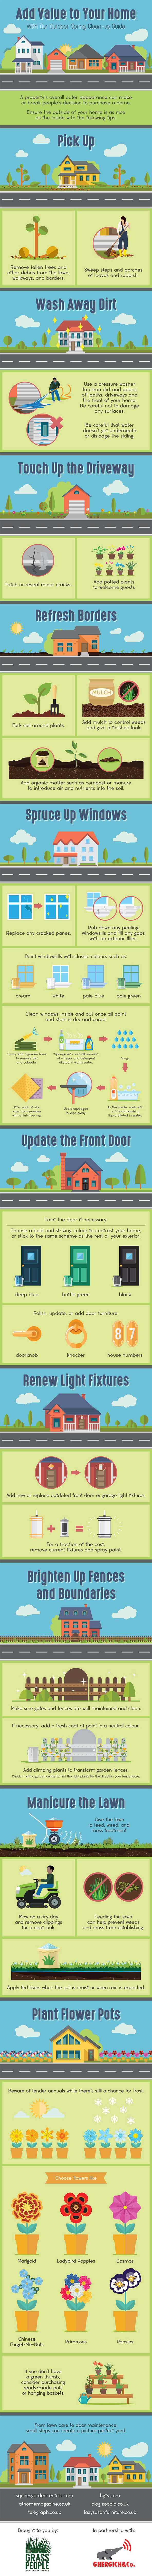 Add Value to Your Home With Our Outdoor Spring Clean-up Guide